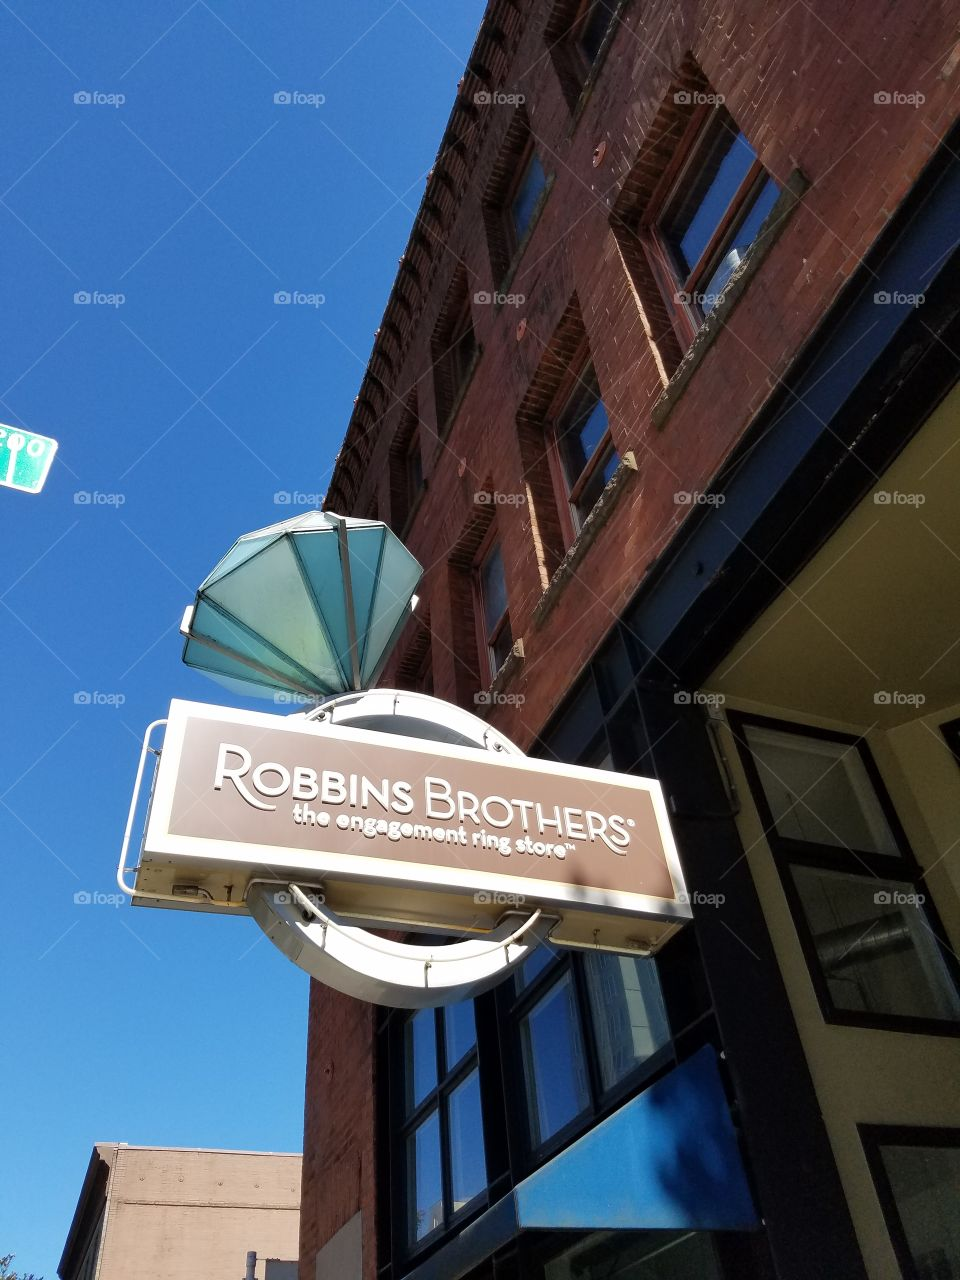 Robins Brothers Store Belltown